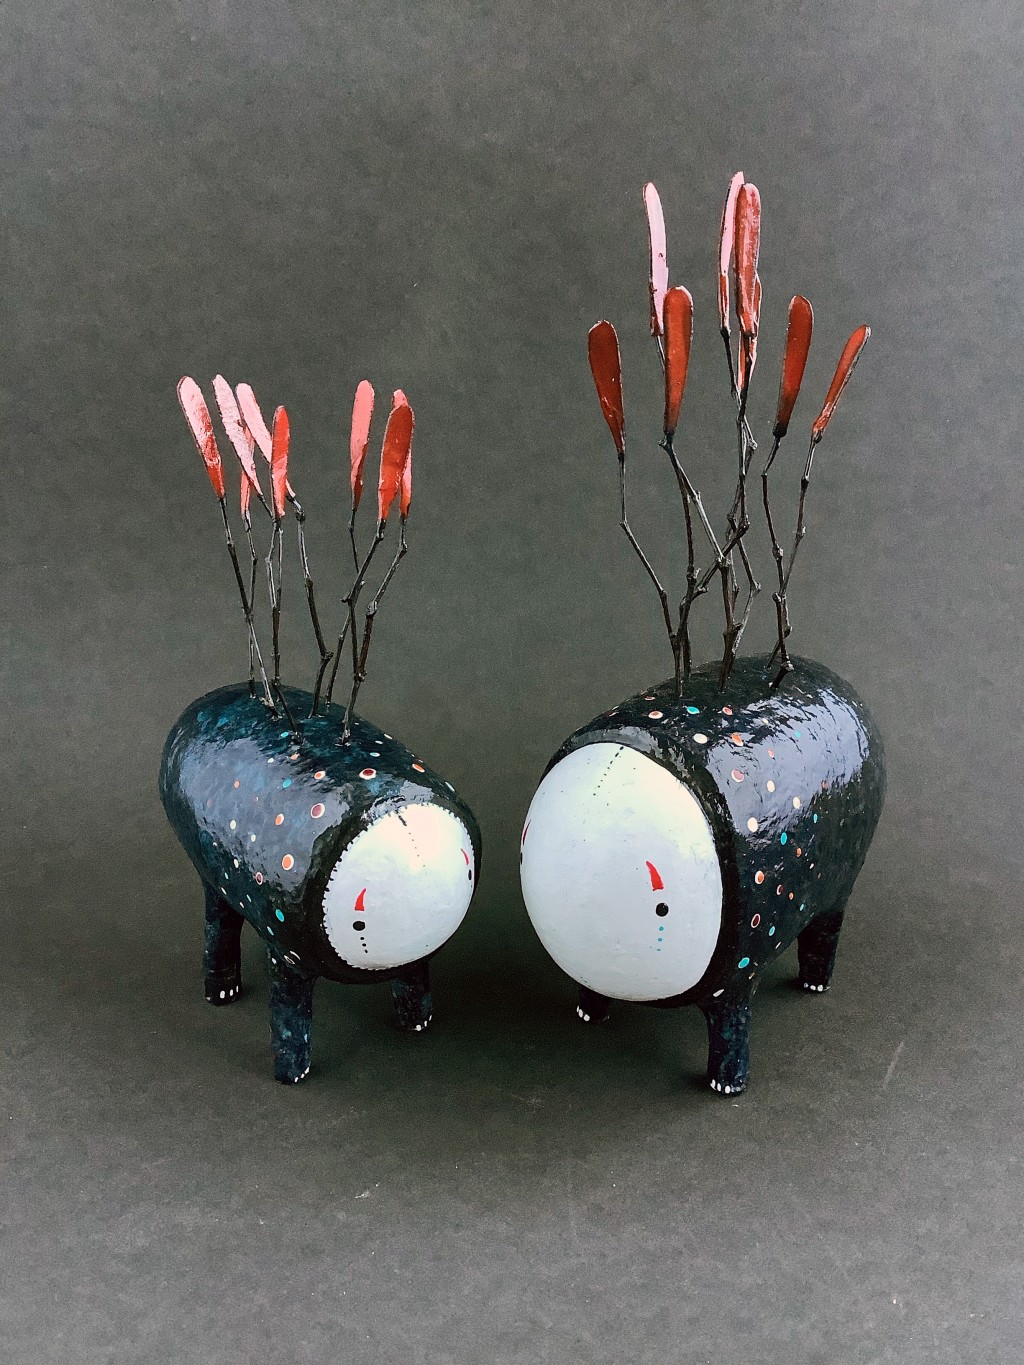 Forest Walkers - Paper mache sculpture by minu